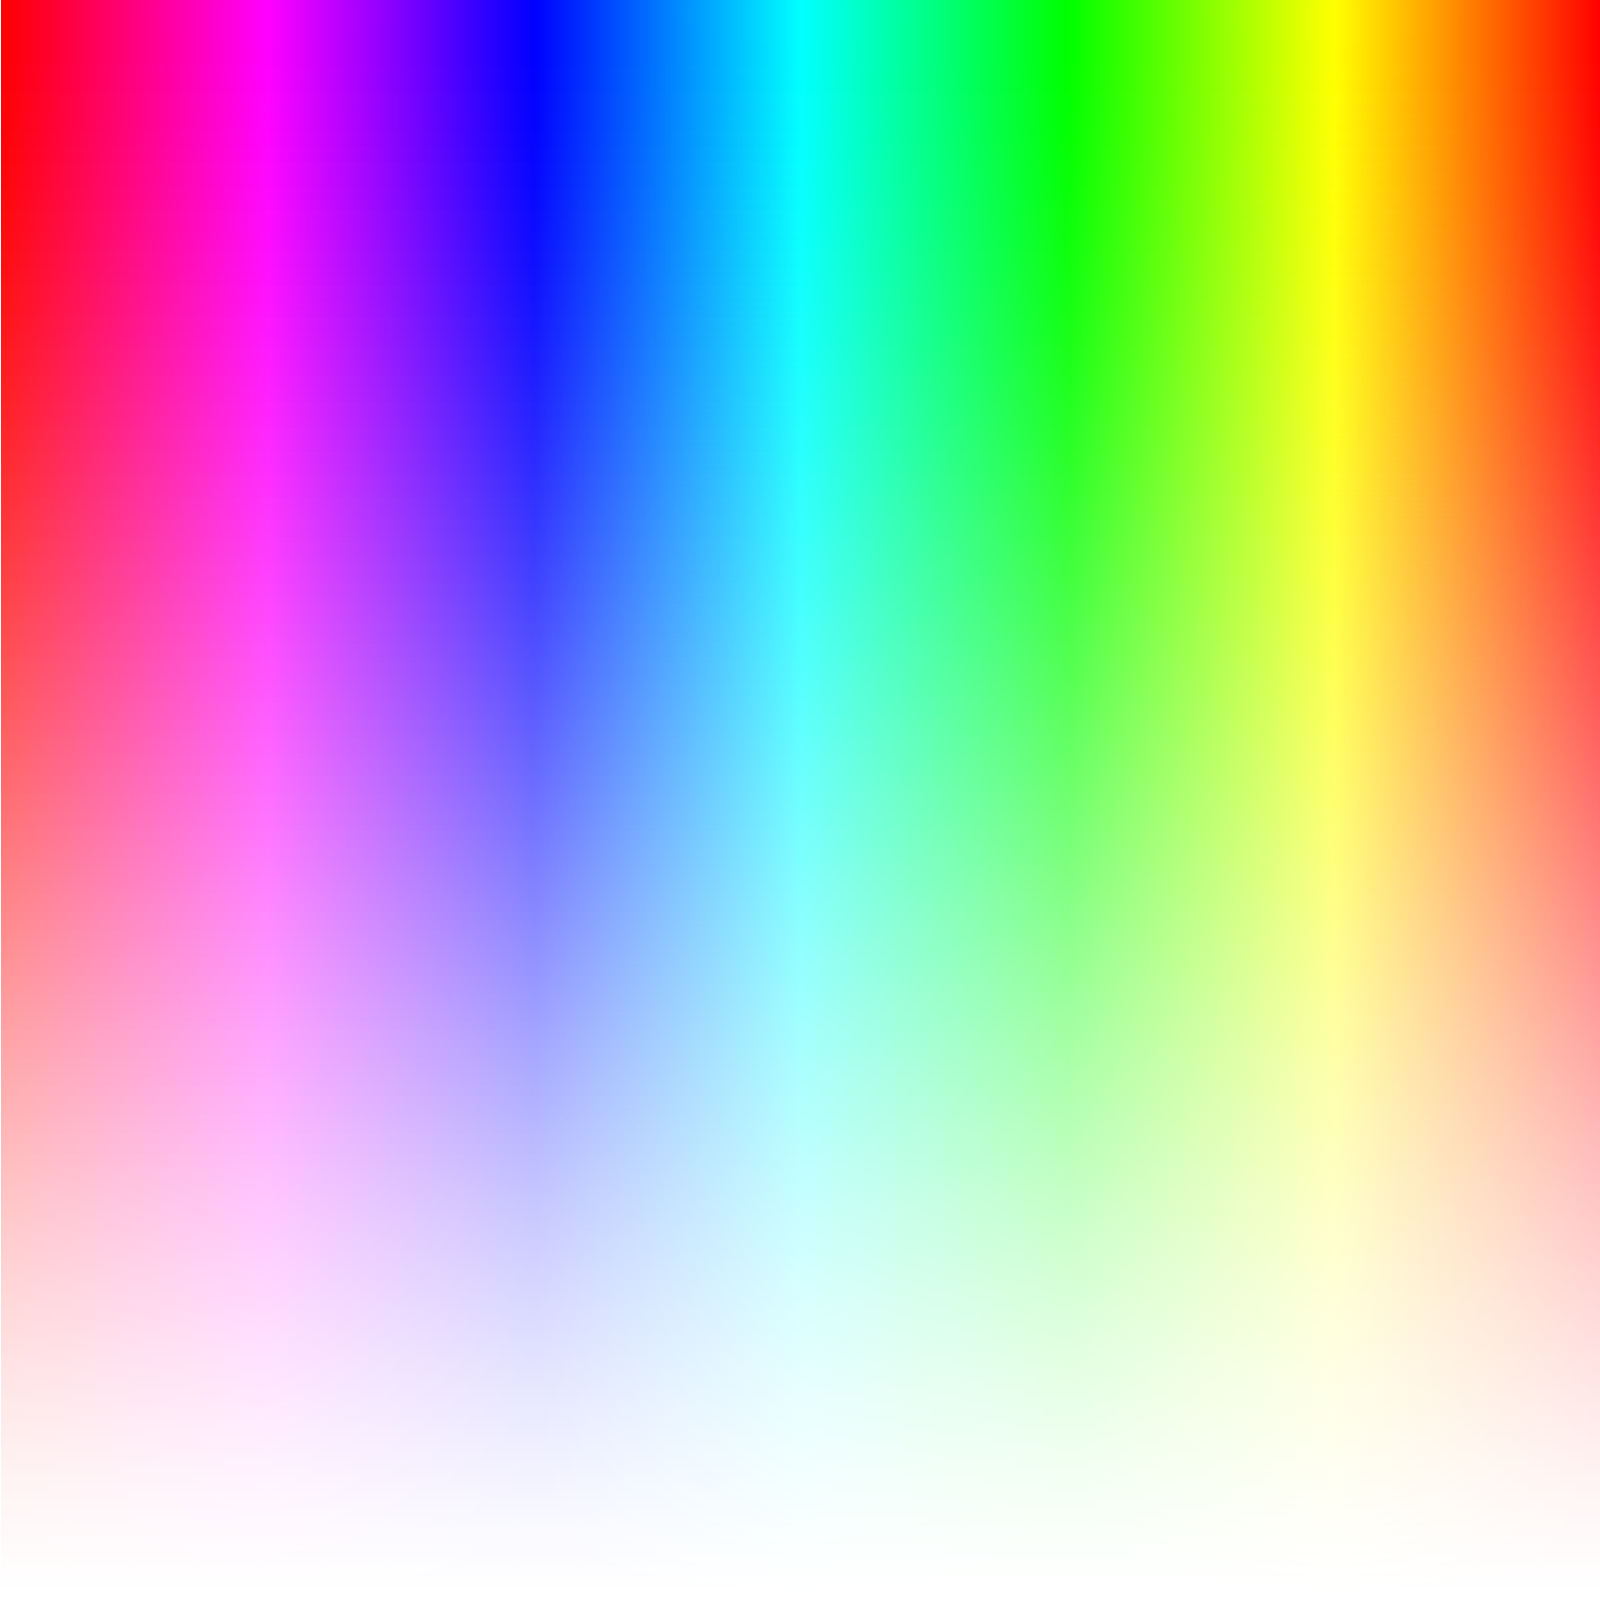 Rainbow gradient png. Image to alpha club